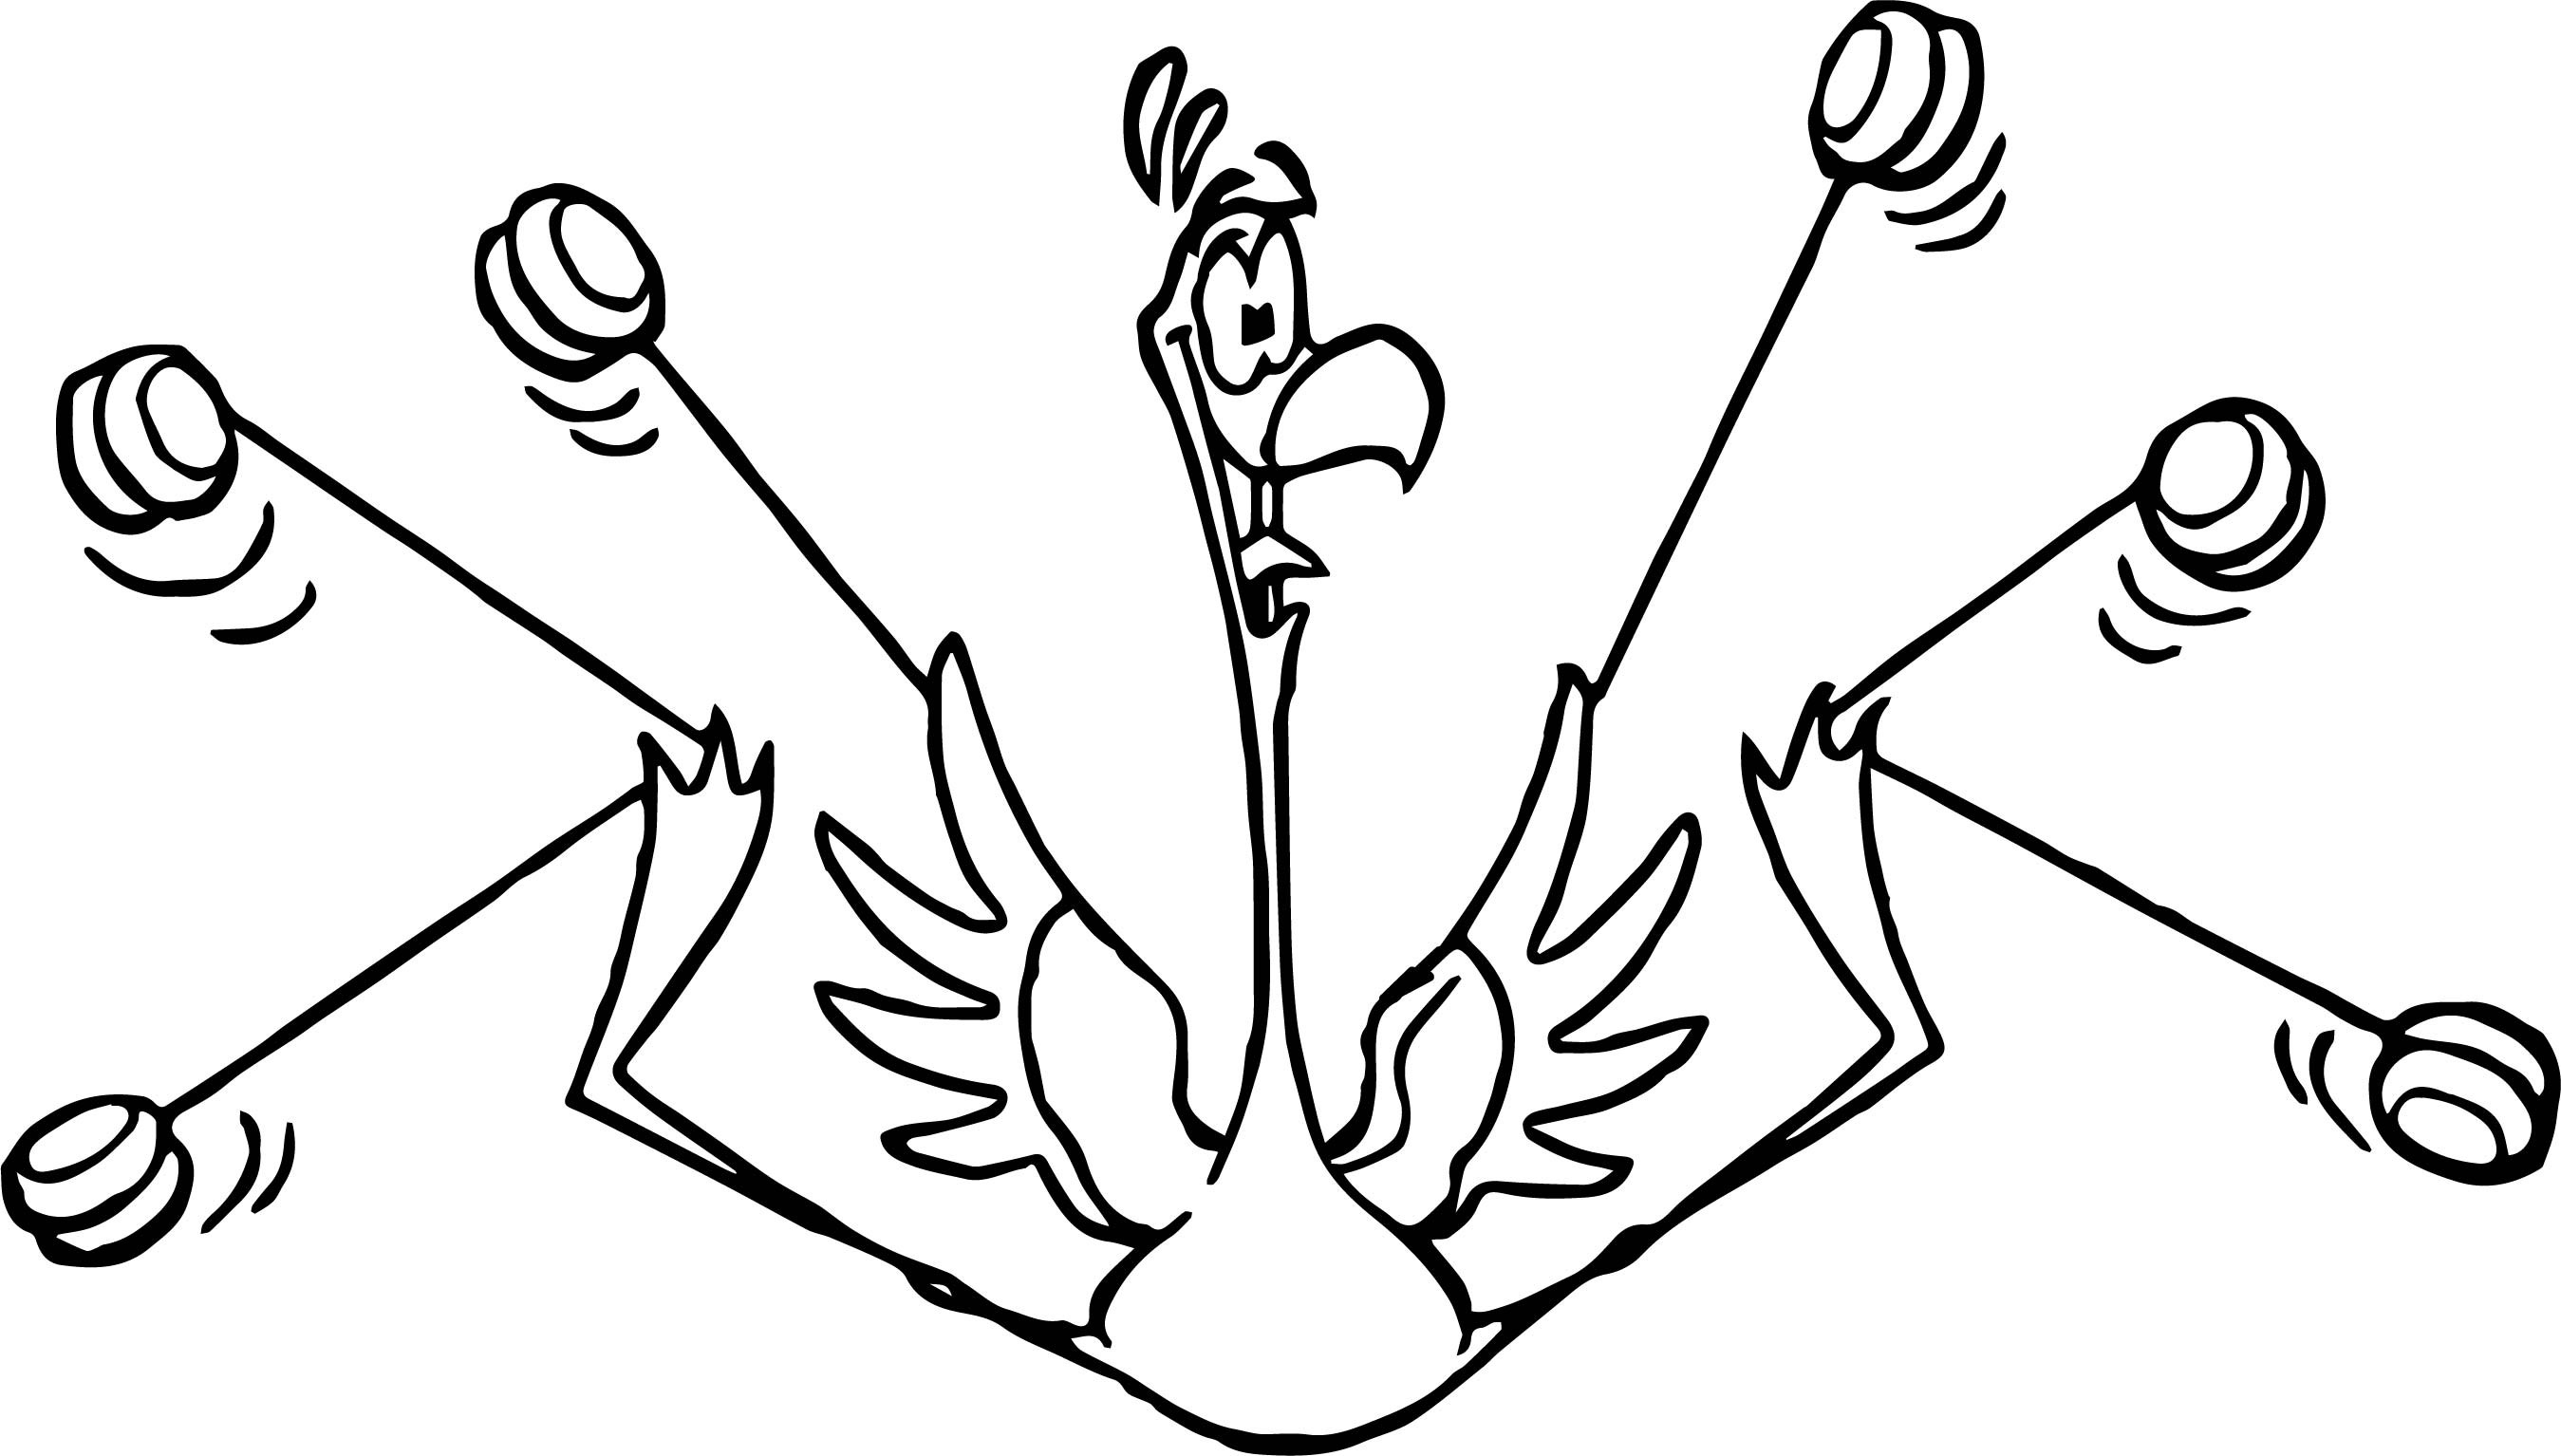 Coloring Page Yoyo Best Of Fantasia Yoyo Coloring Pages Wecolori